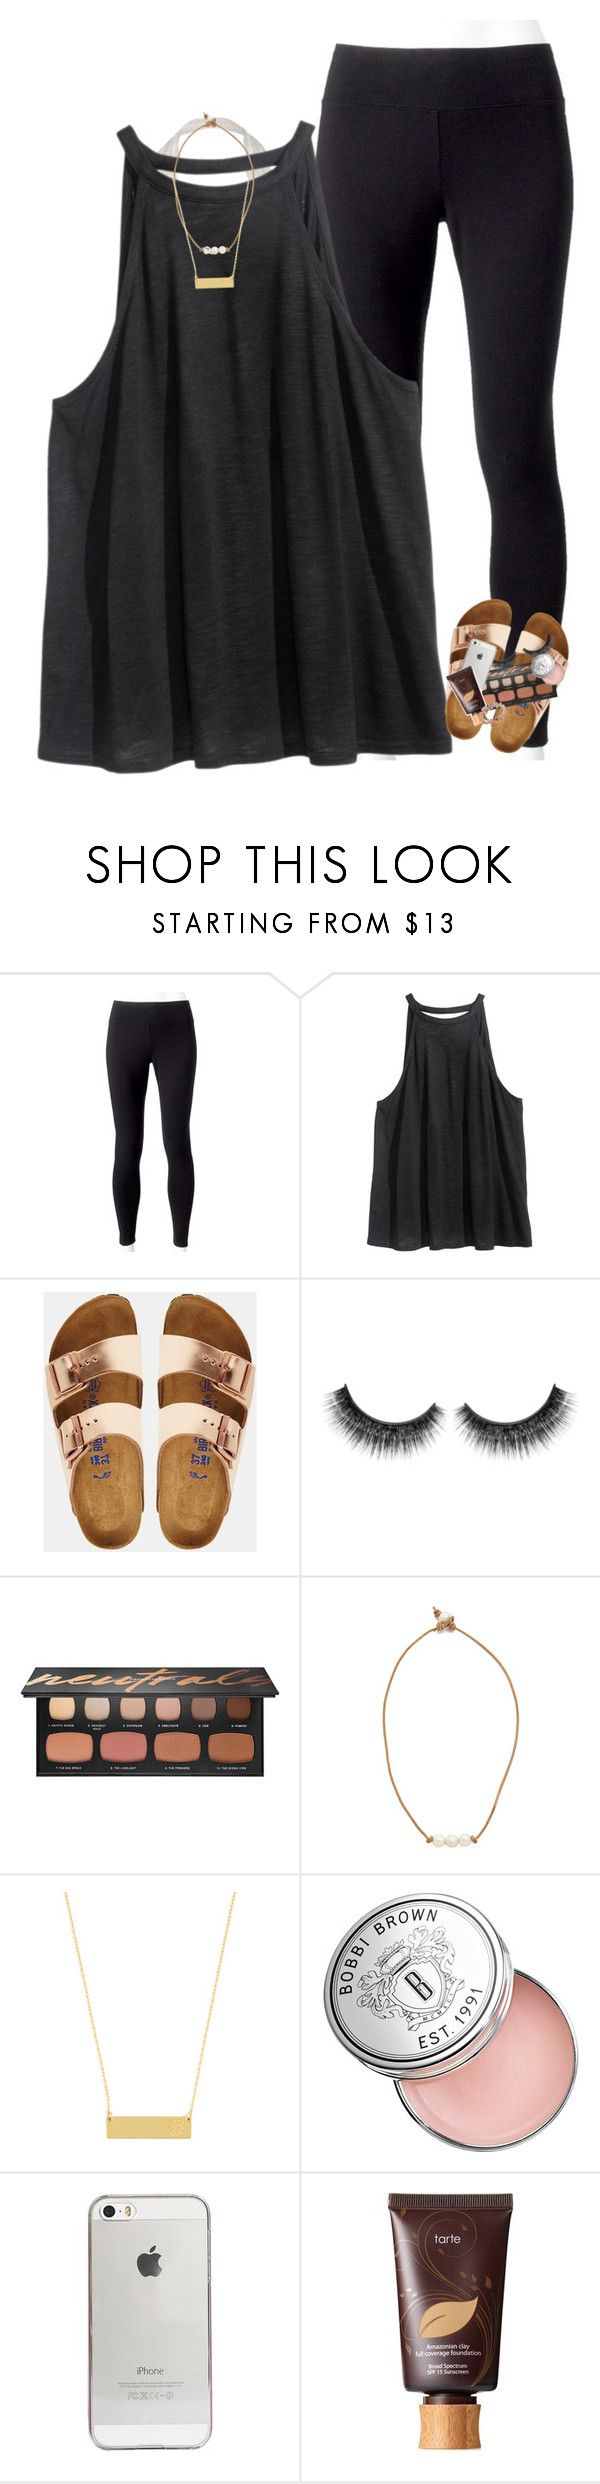 """I have a long day ."" by morgankailah ❤ liked on Polyvore featuring Jockey, H&M, Birkenstock, Bare Escentuals, Lead, BaubleBar, Bobbi Brown Cosmetics, Agent 18 and tarte"